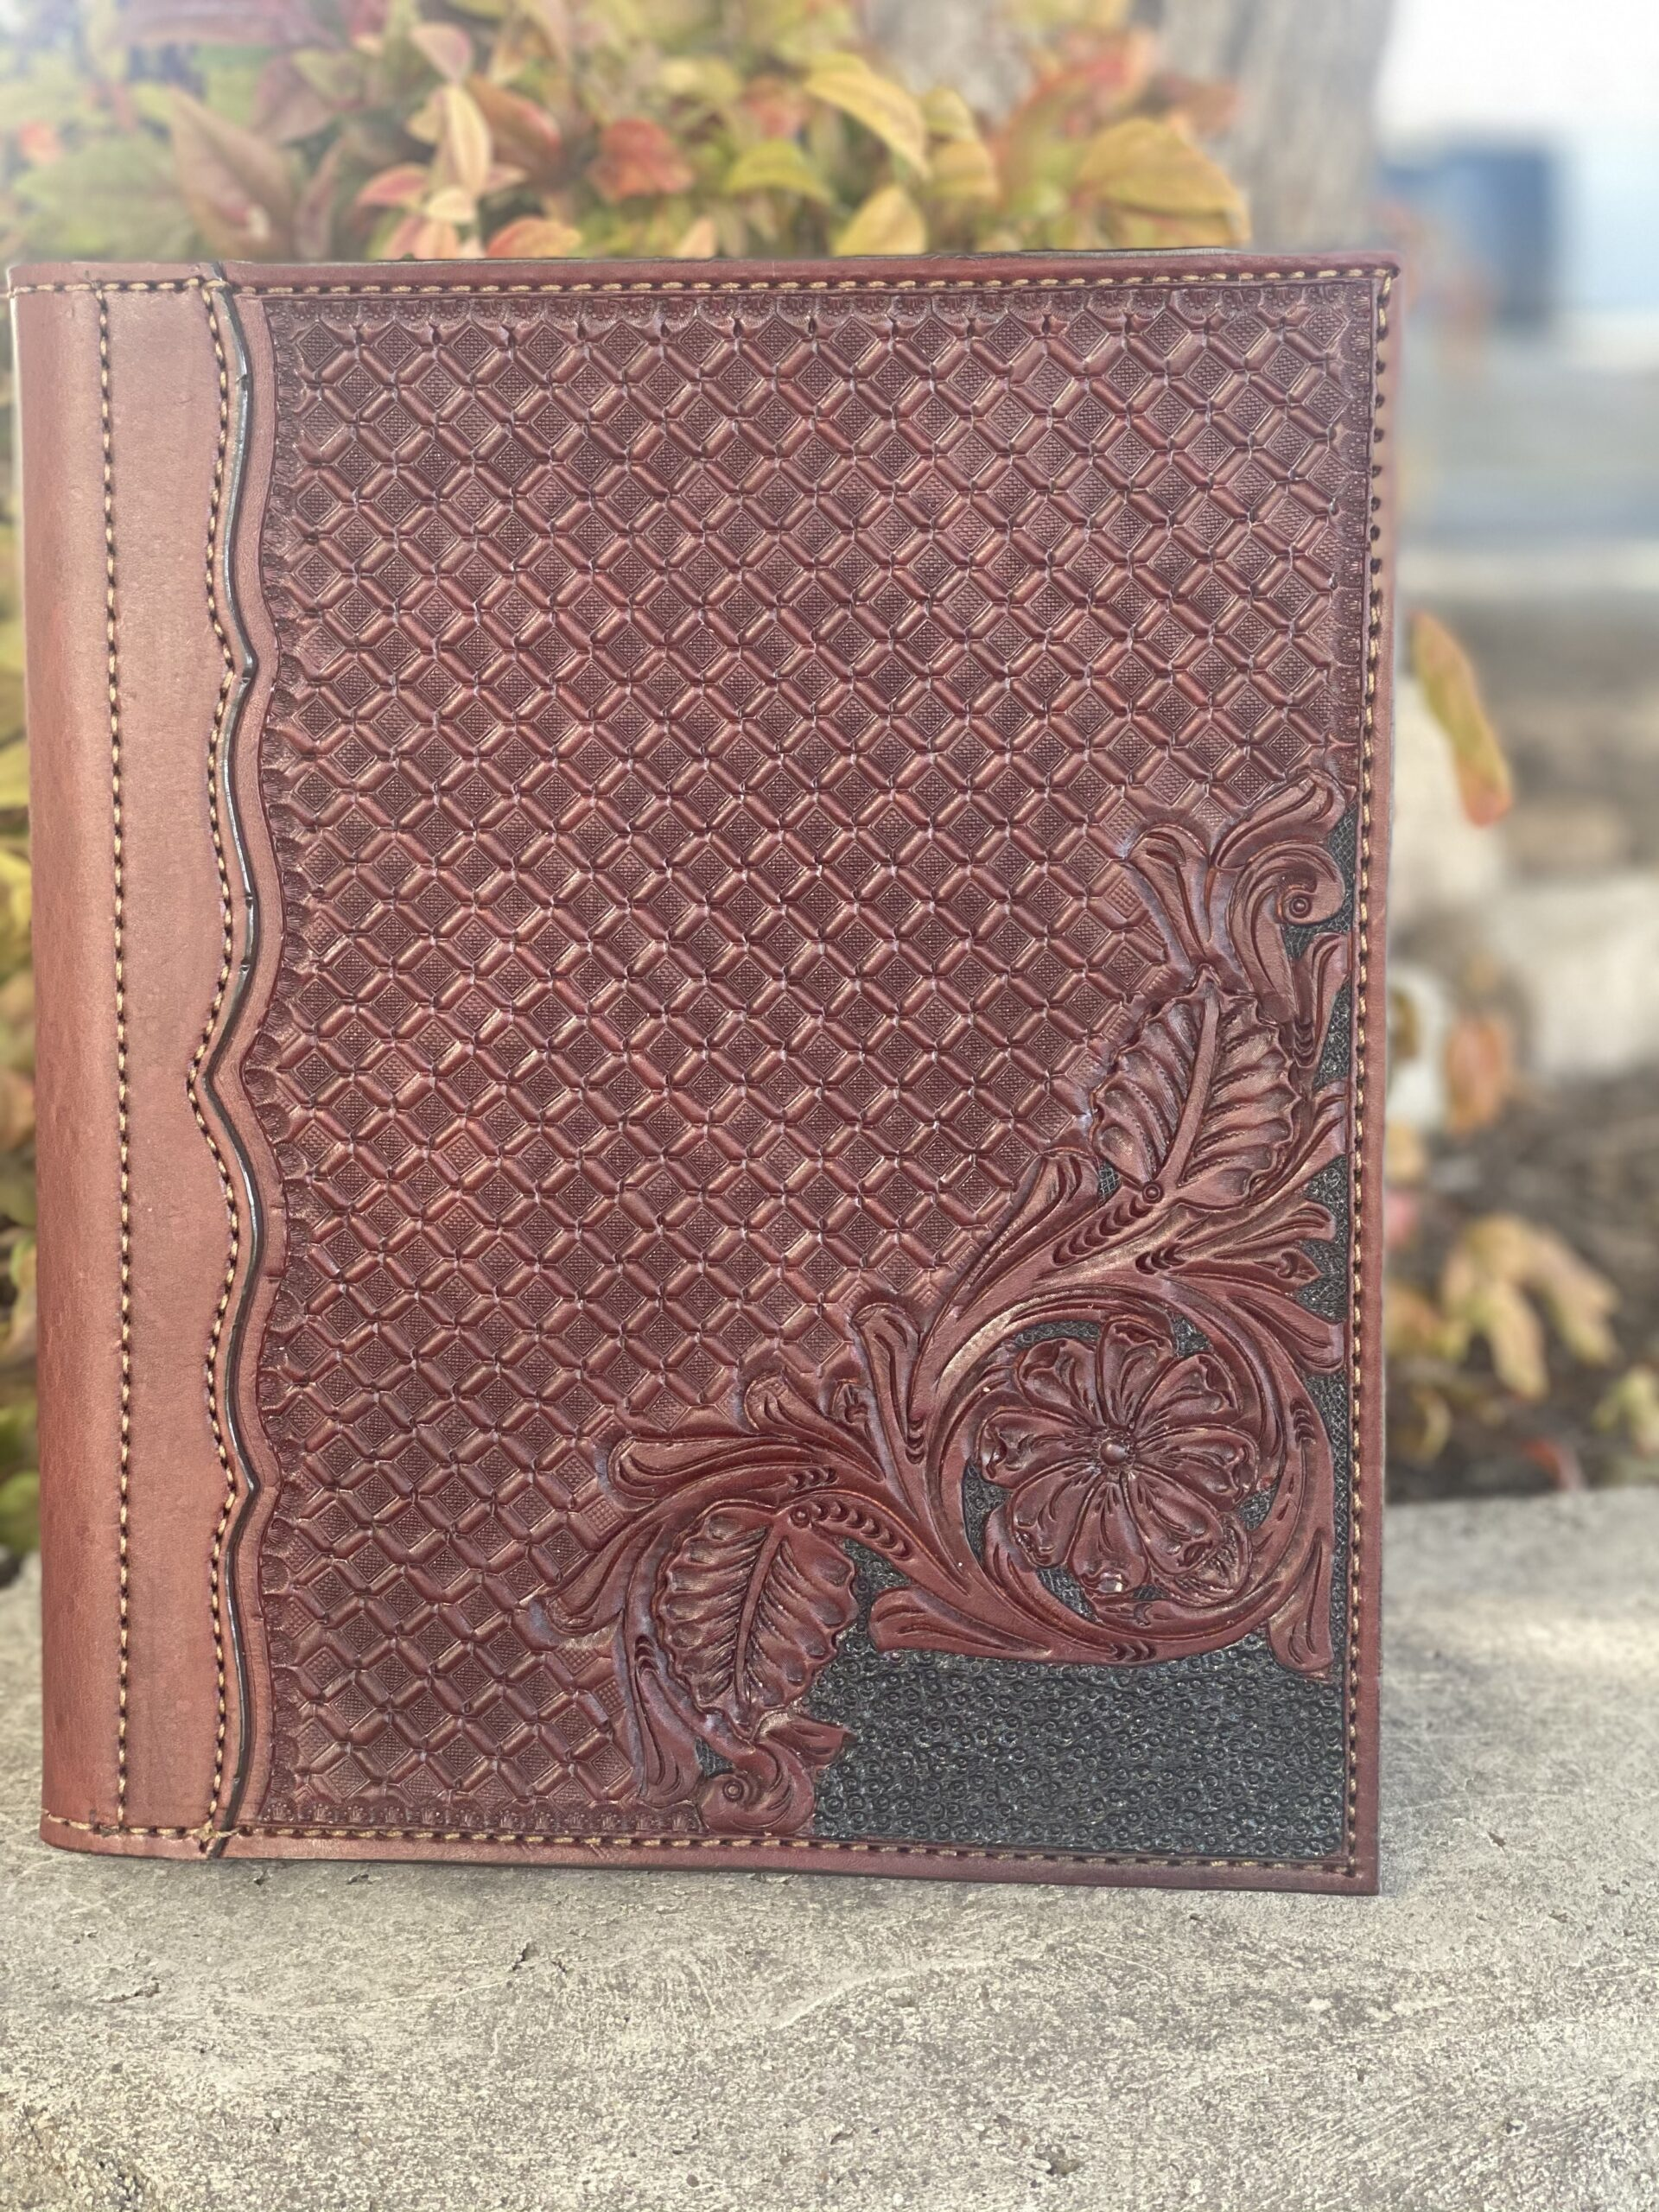 Portfolio in Chocolate combo tooled